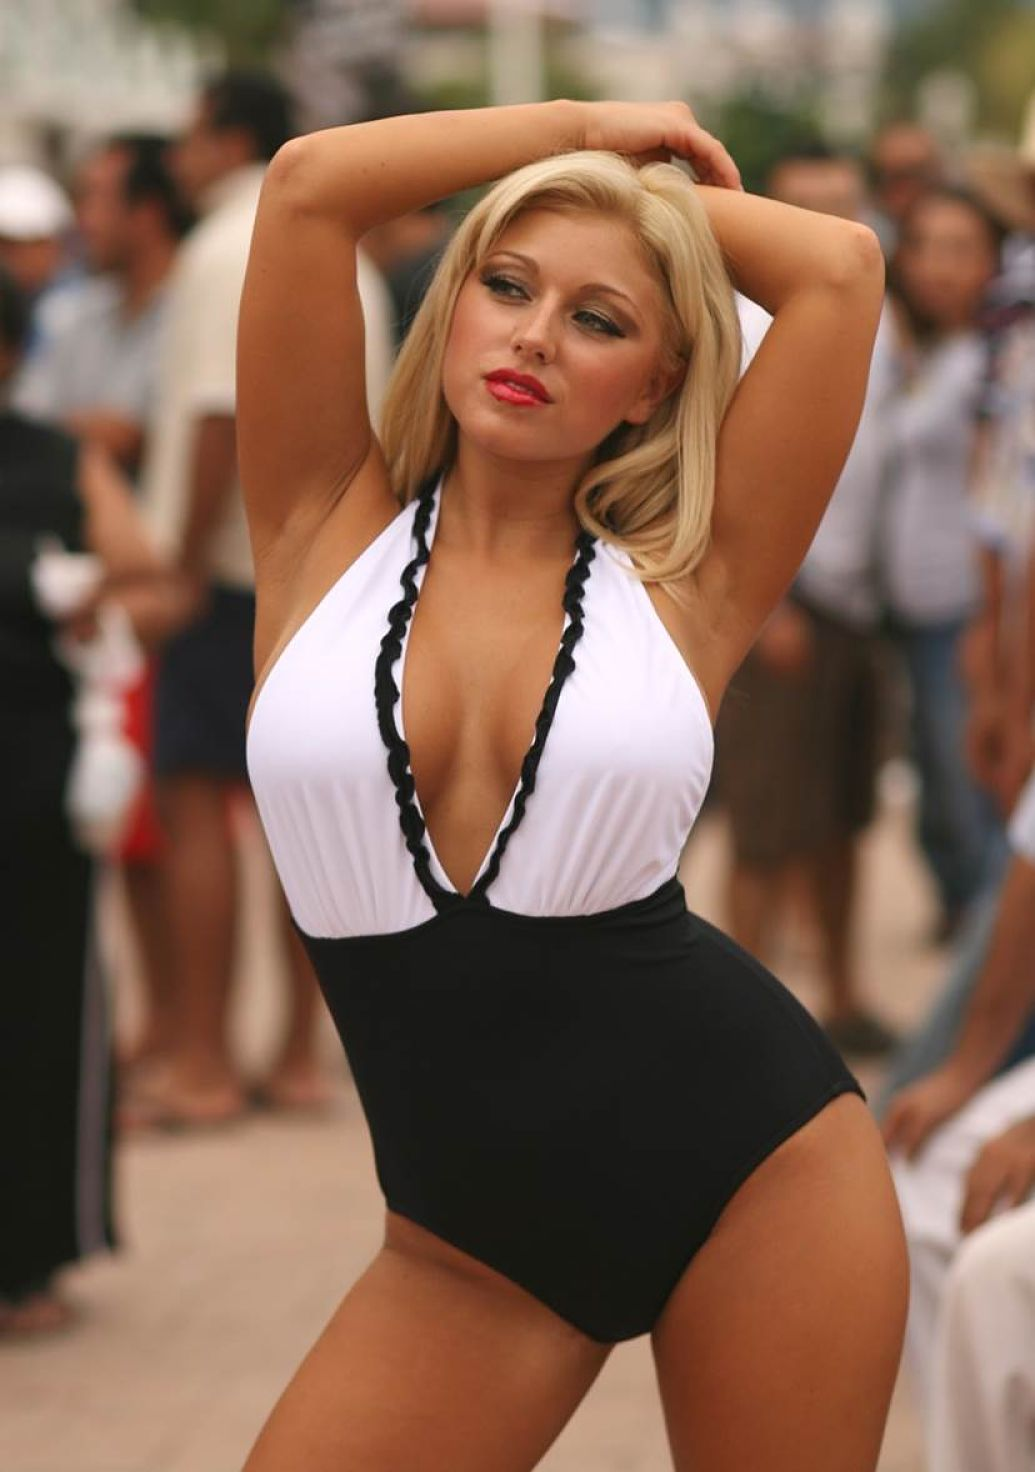 ... Black Women In One Piece Swimsuits « Search Results « Black Models